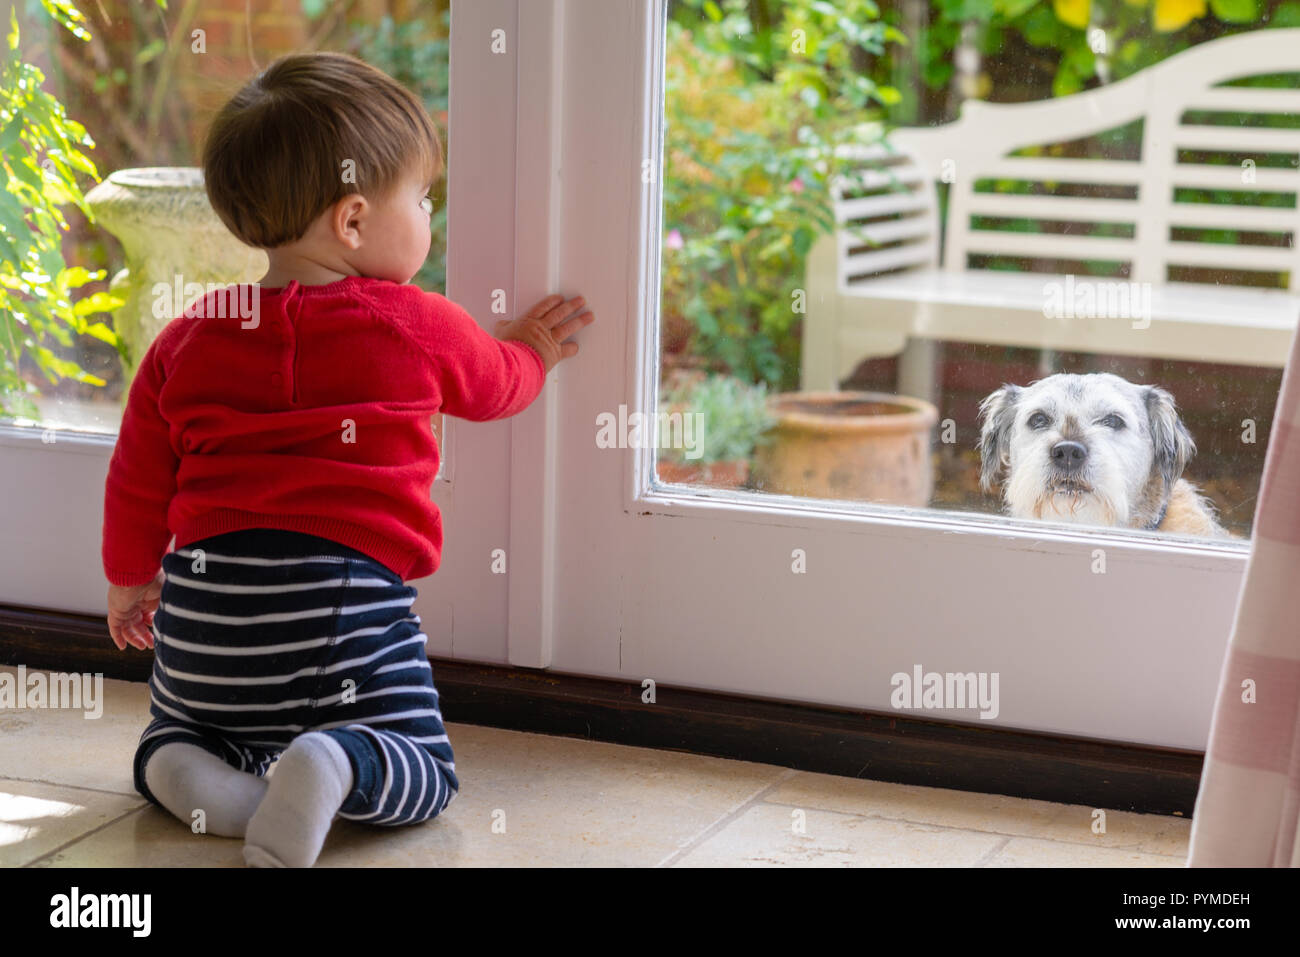 Boy toddler looking out of a patio window into the garden with a dog on the outside looking back in. - Stock Image